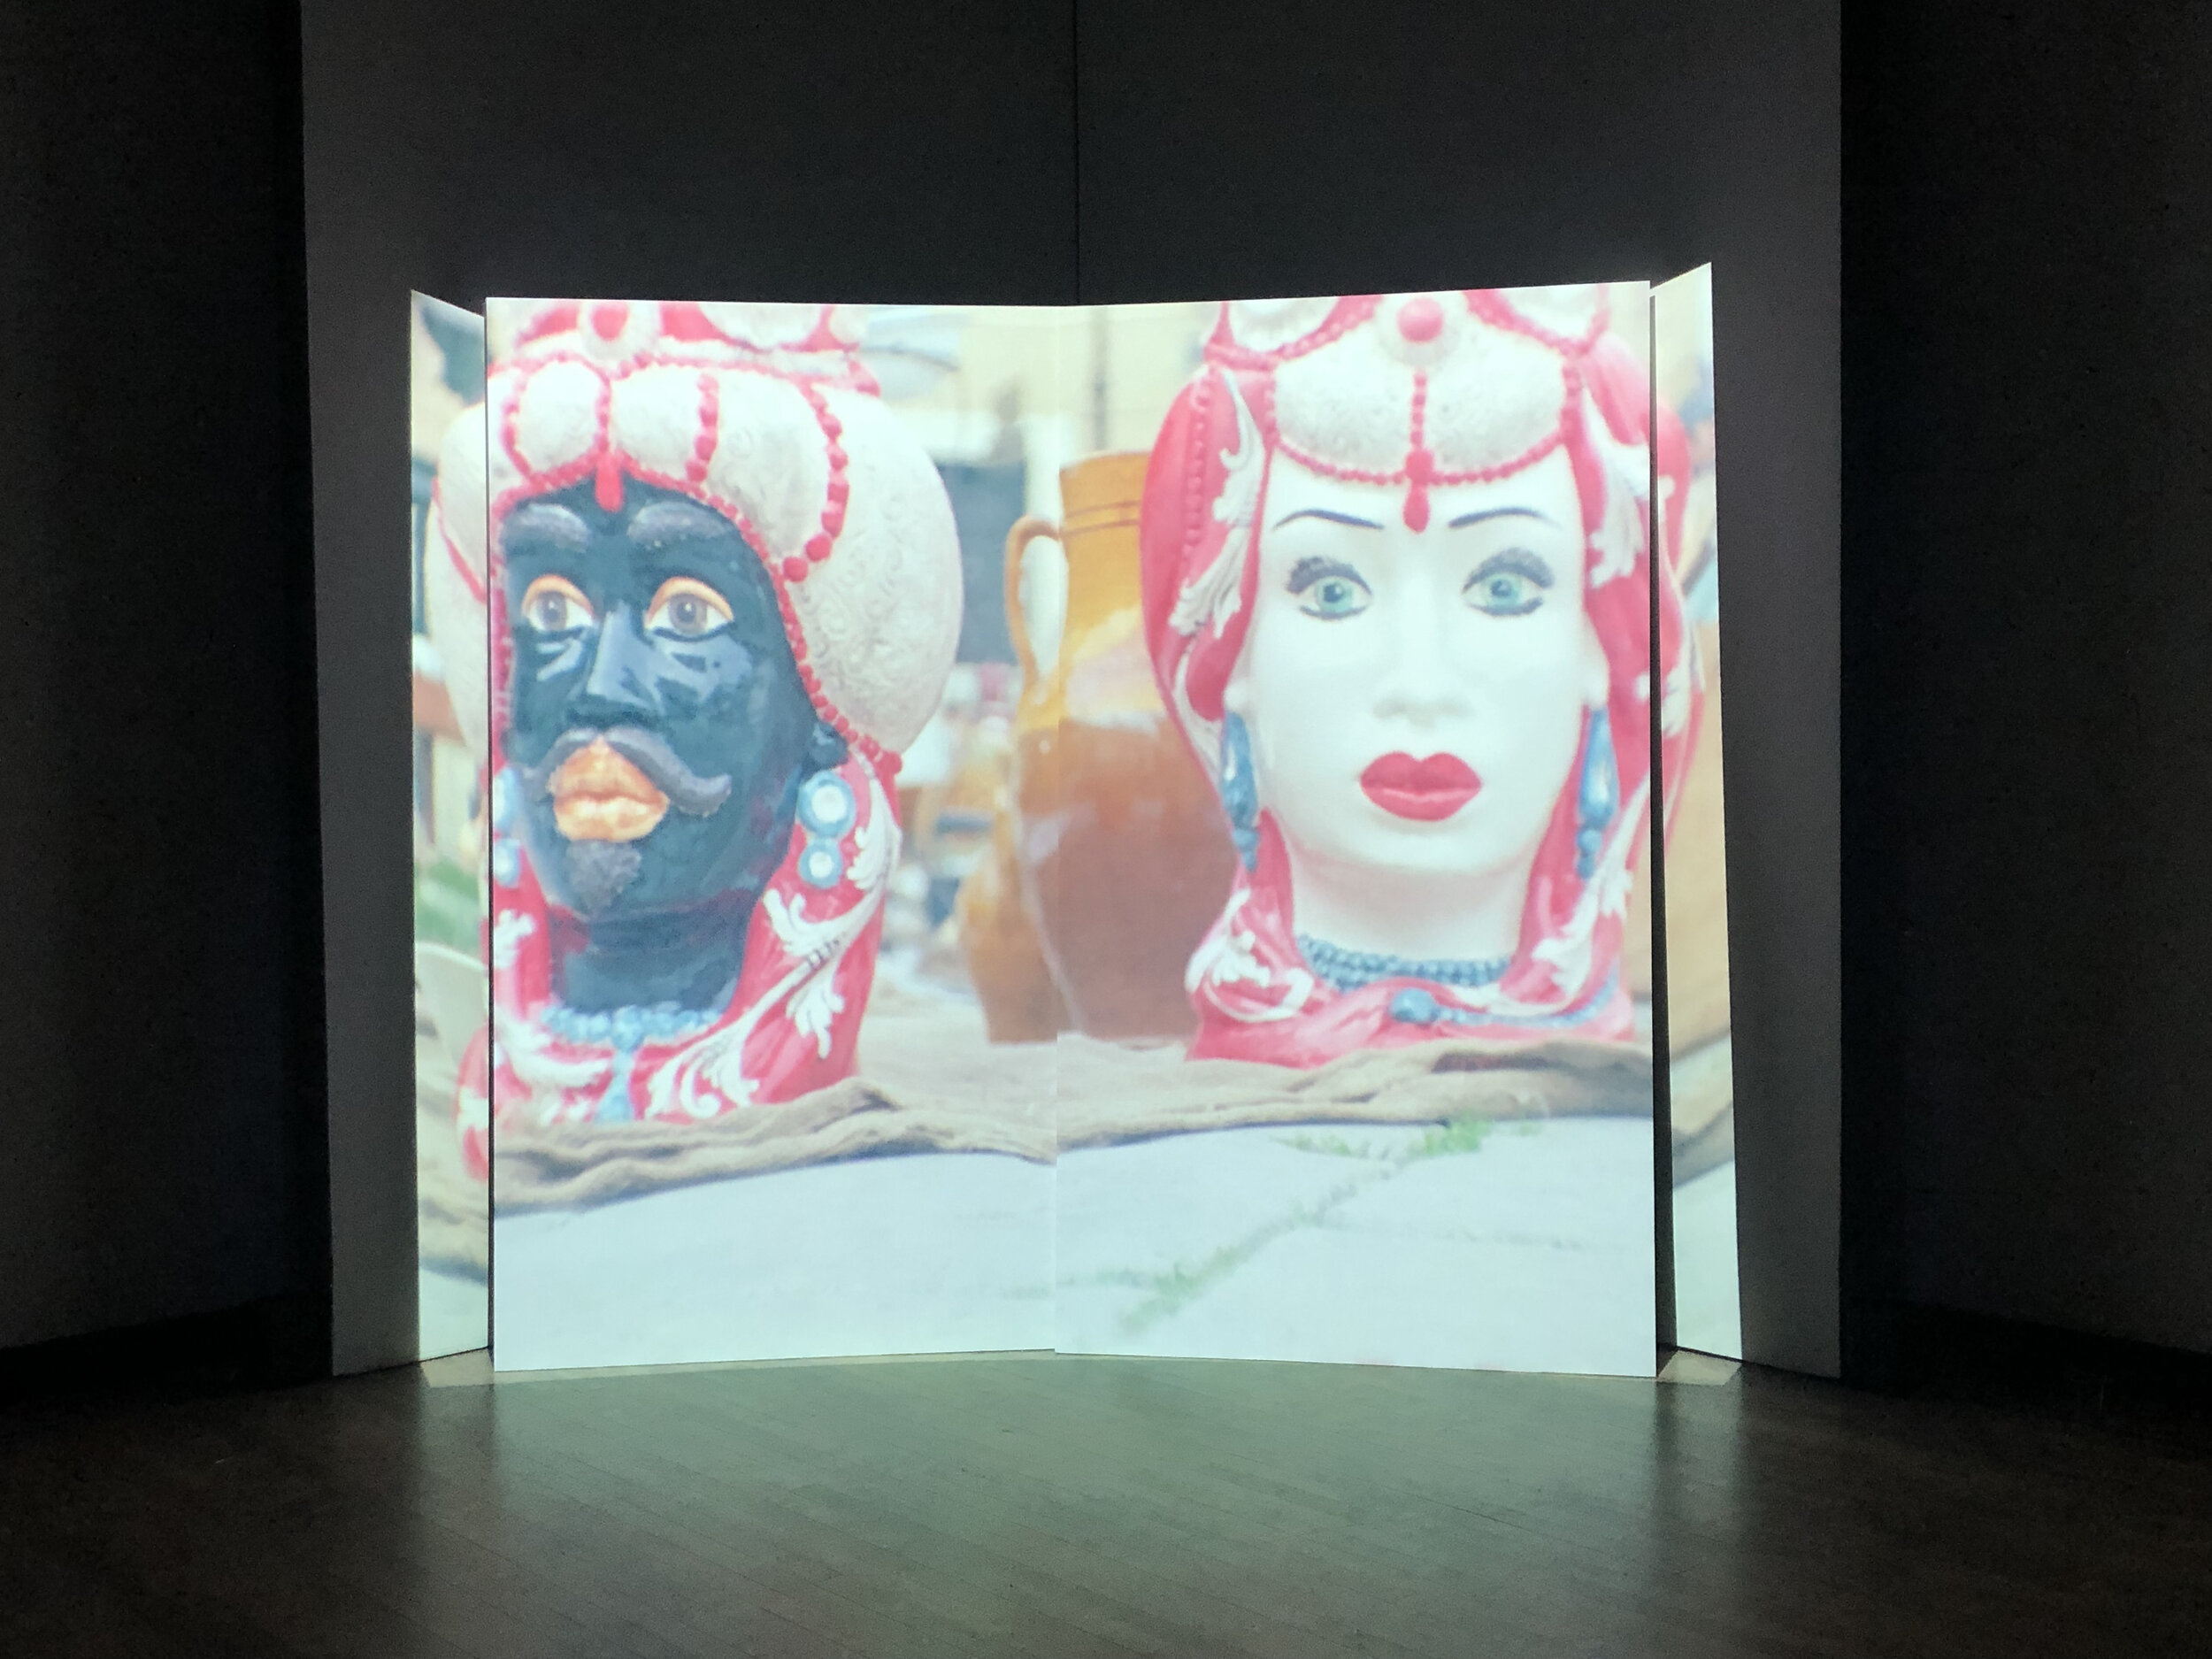 installation view at the Rubenstein Arts gallery. projection onto a bifurcated screen.